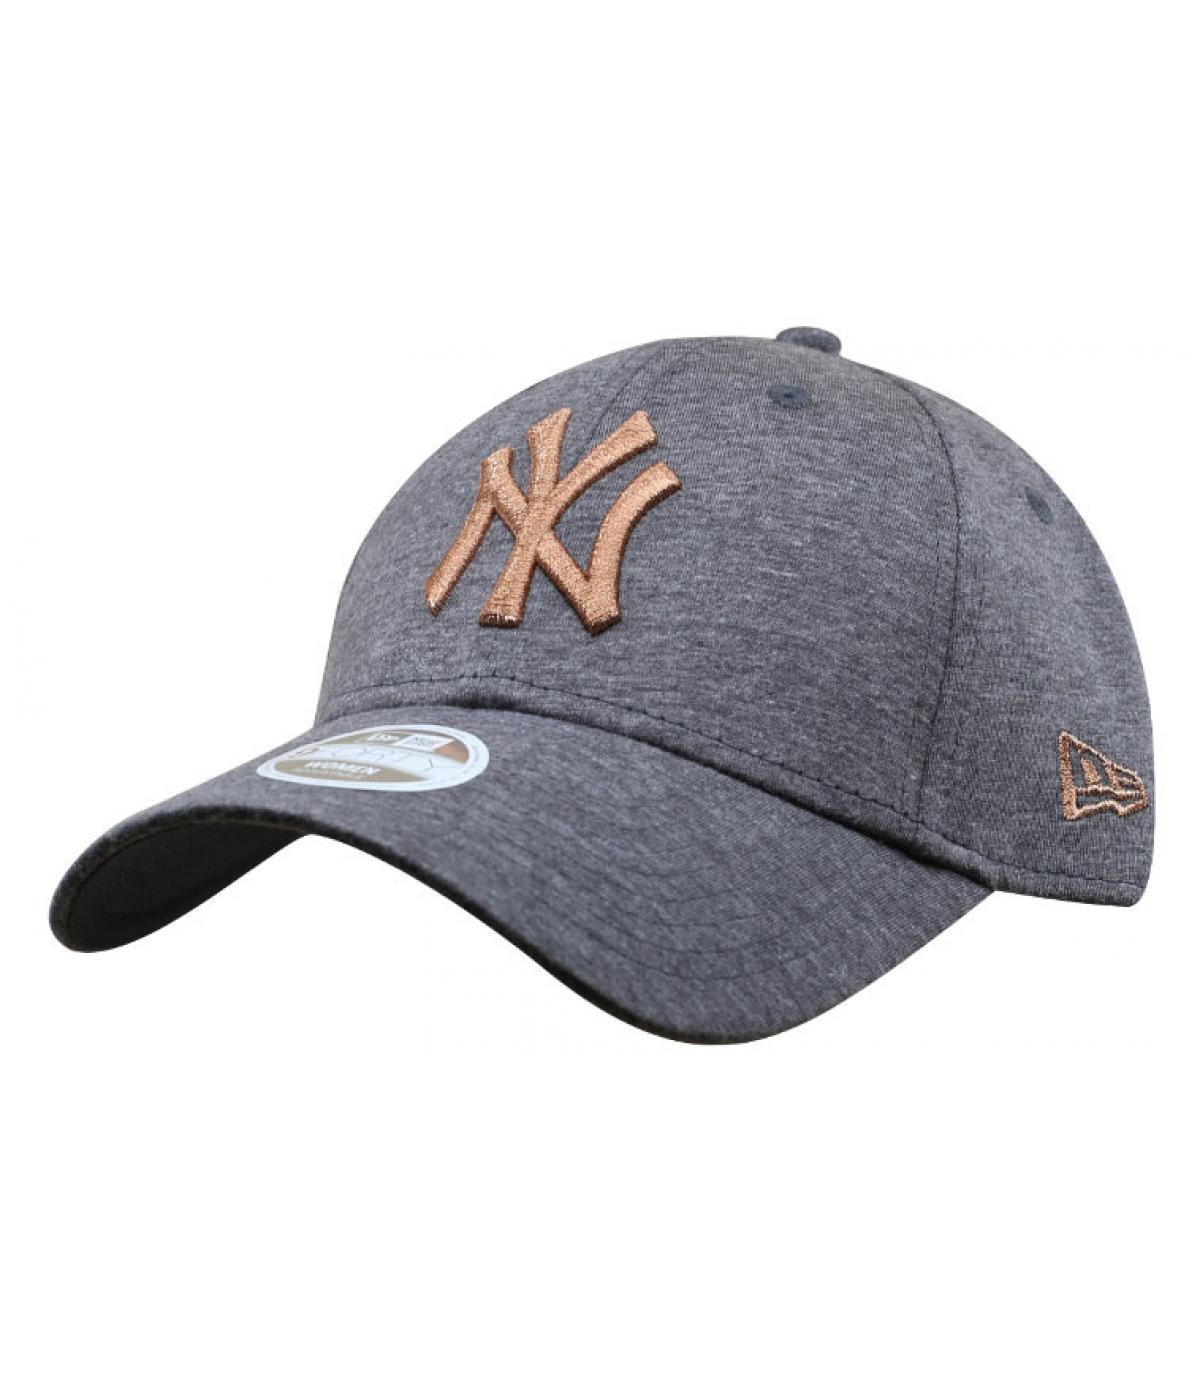 casquette femme gris or NY